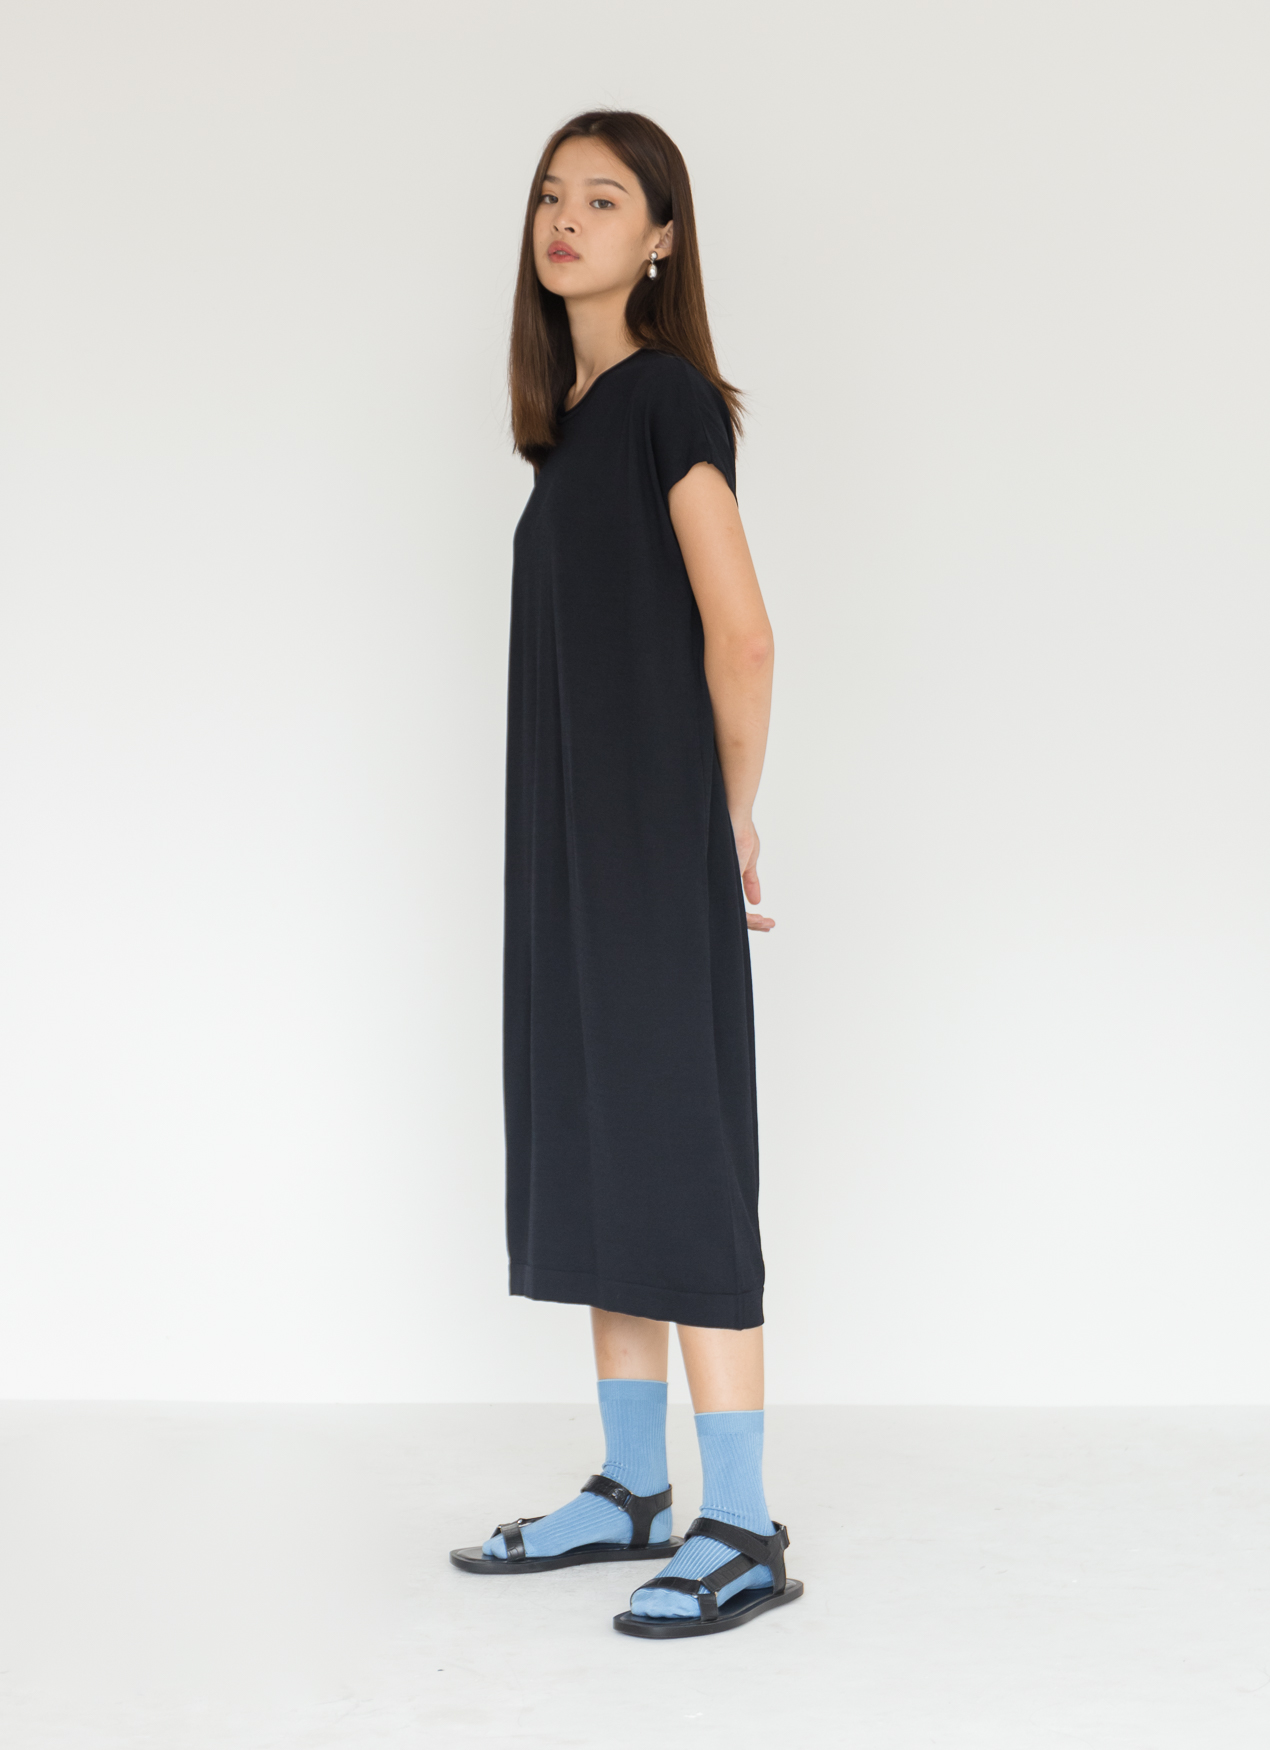 BOWN Jia Dress - Black